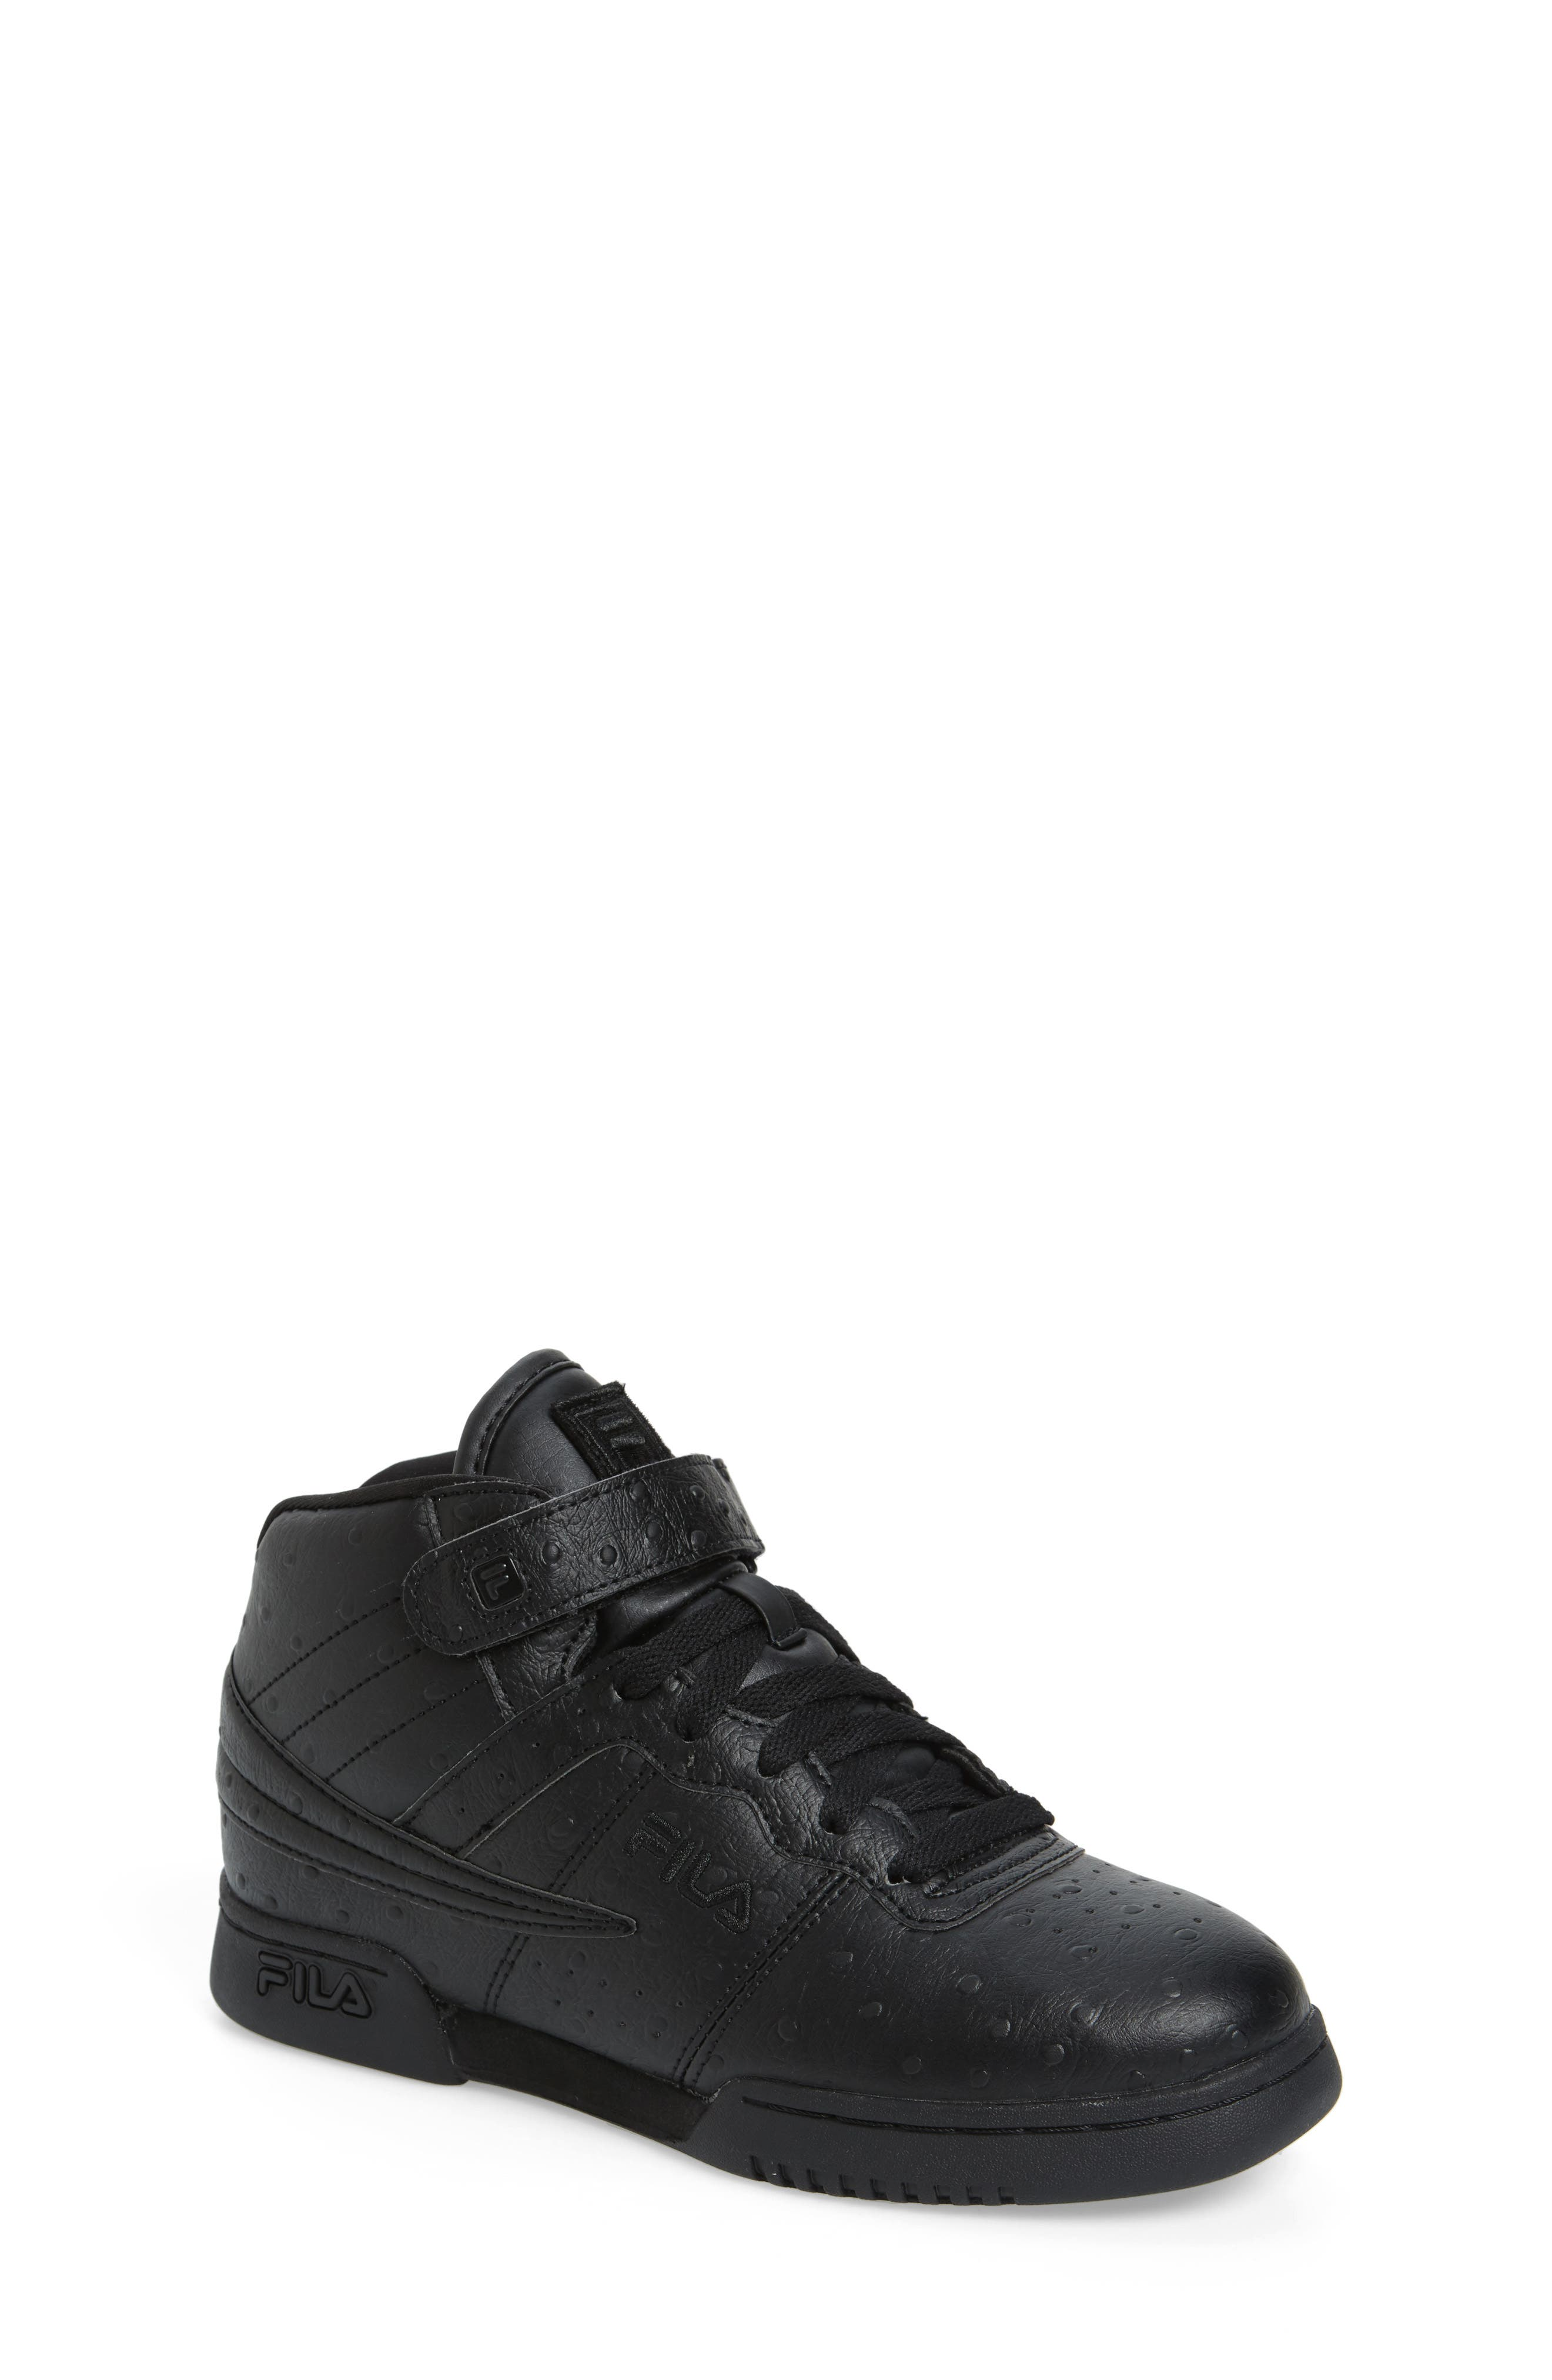 F-13 Ostrich Embossed High Top Sneaker,                             Main thumbnail 1, color,                             TRIPLE BLACK